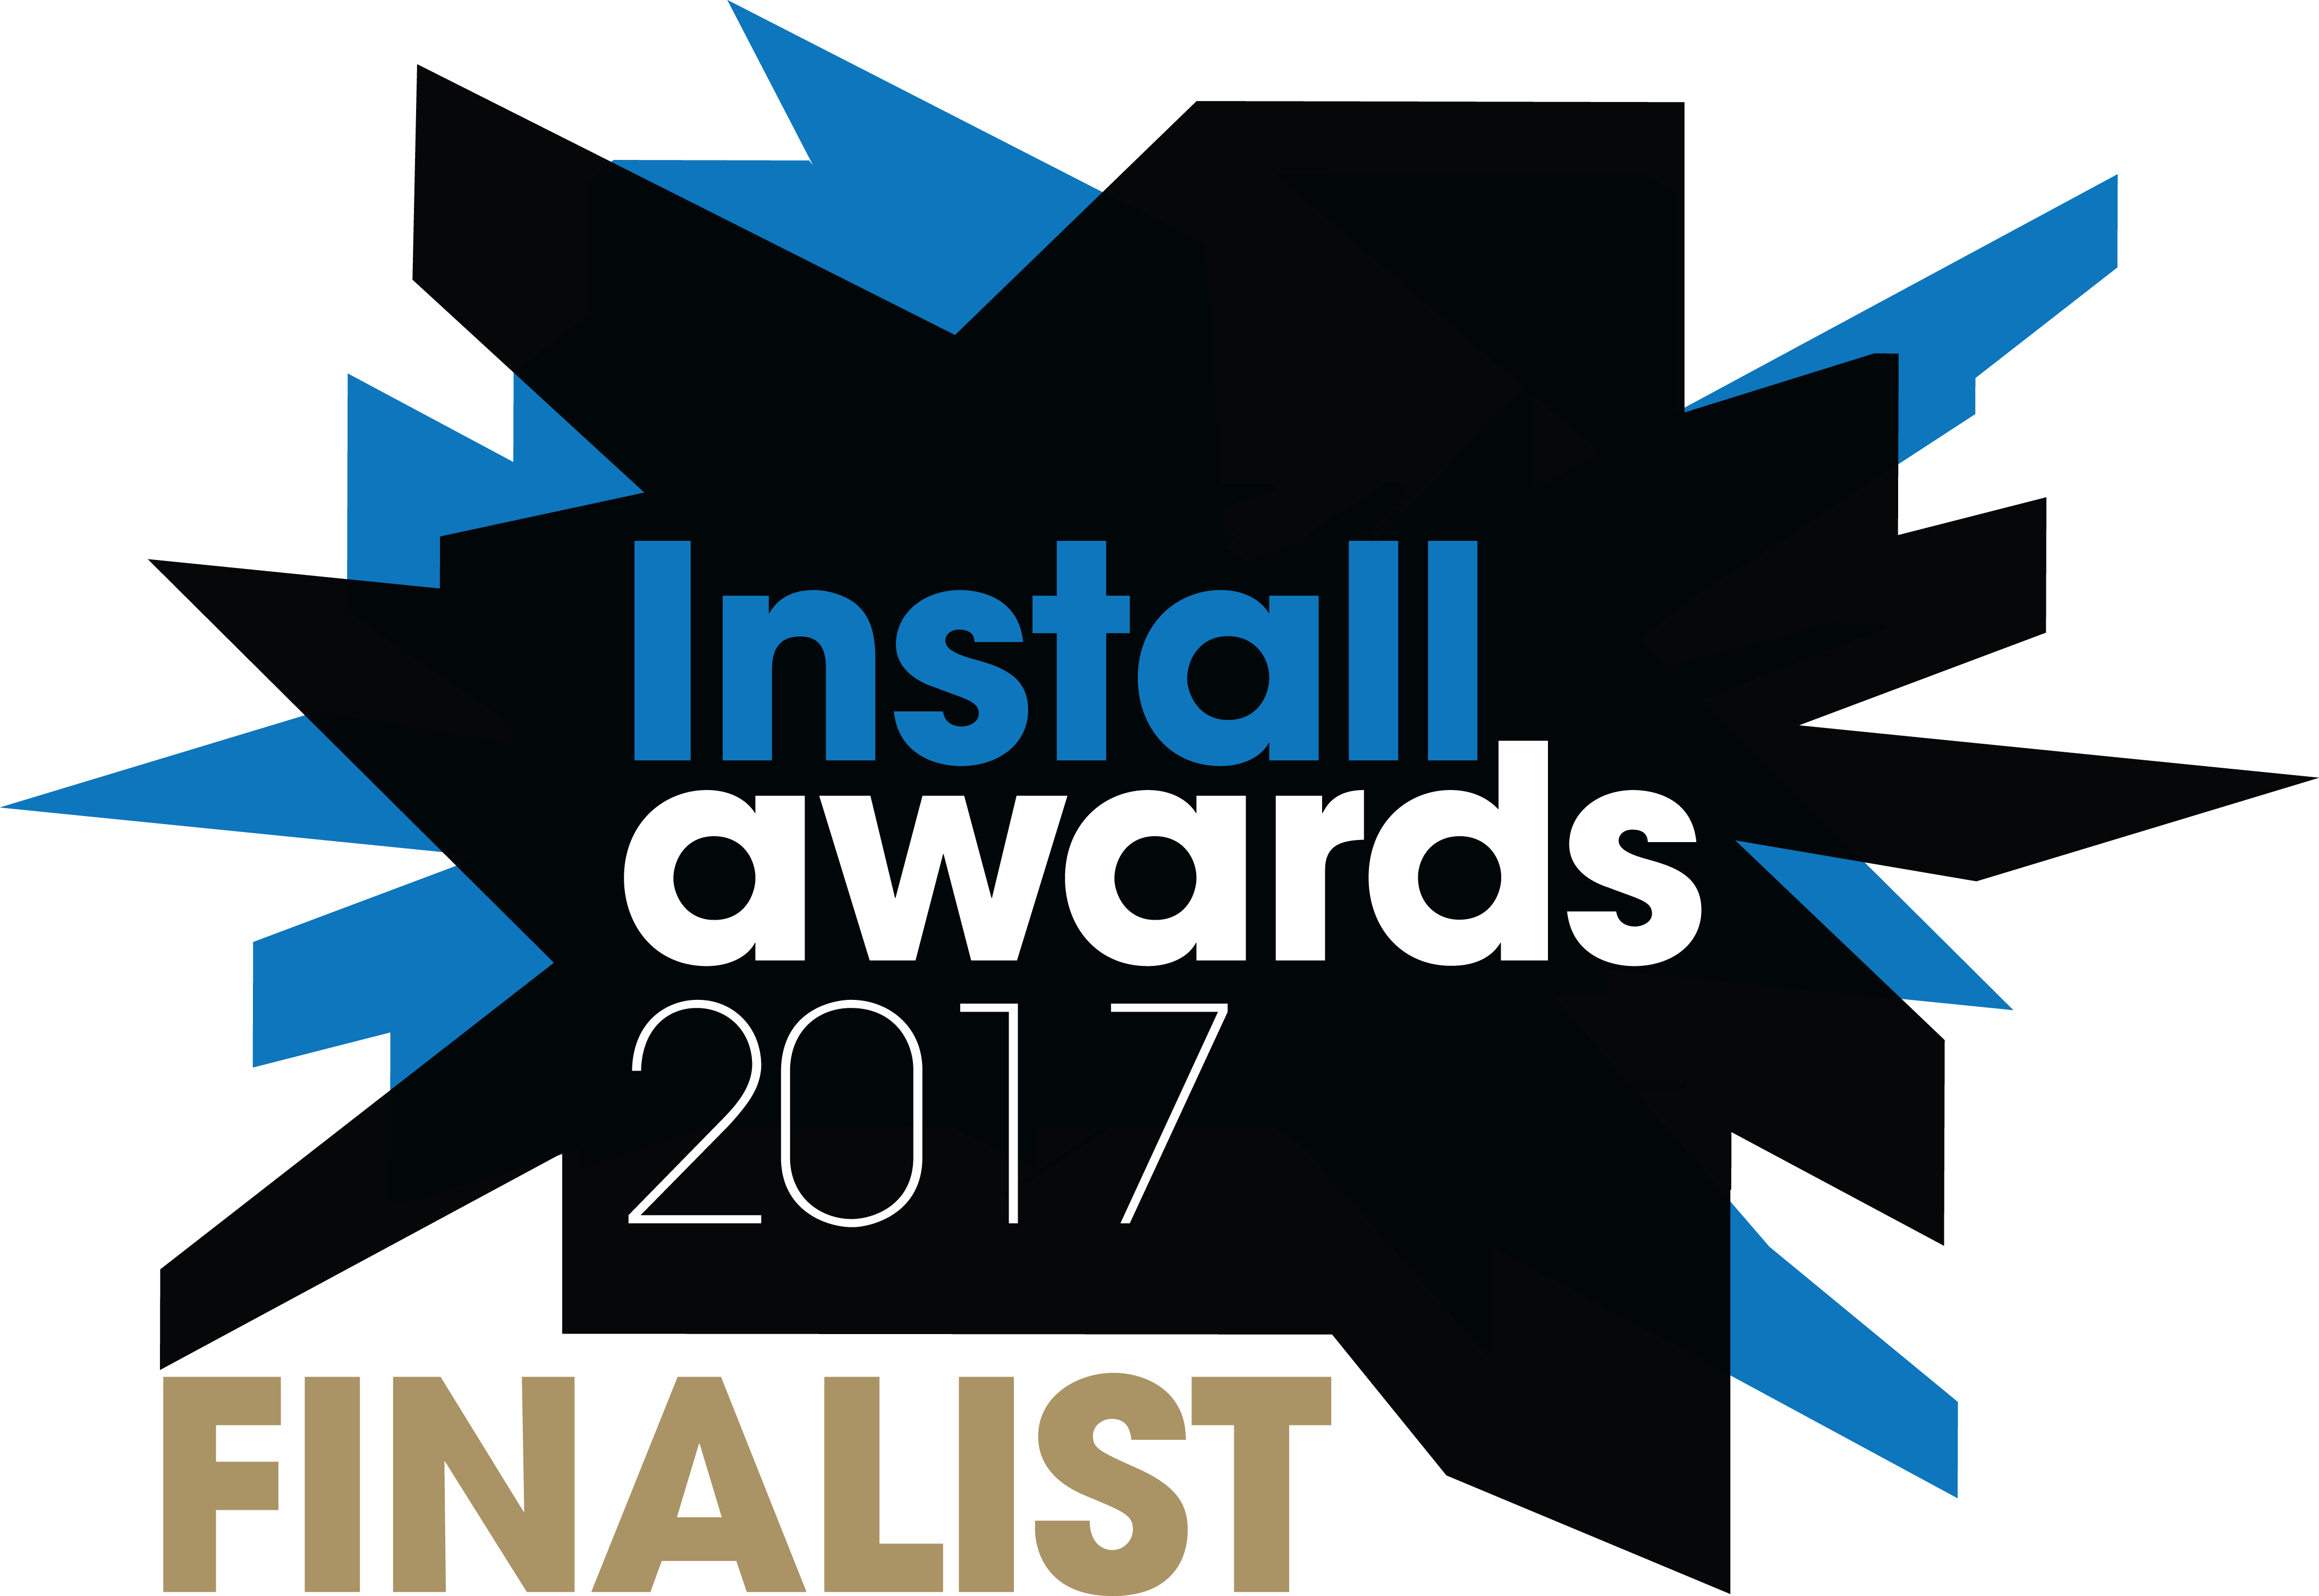 Install Awards finalists